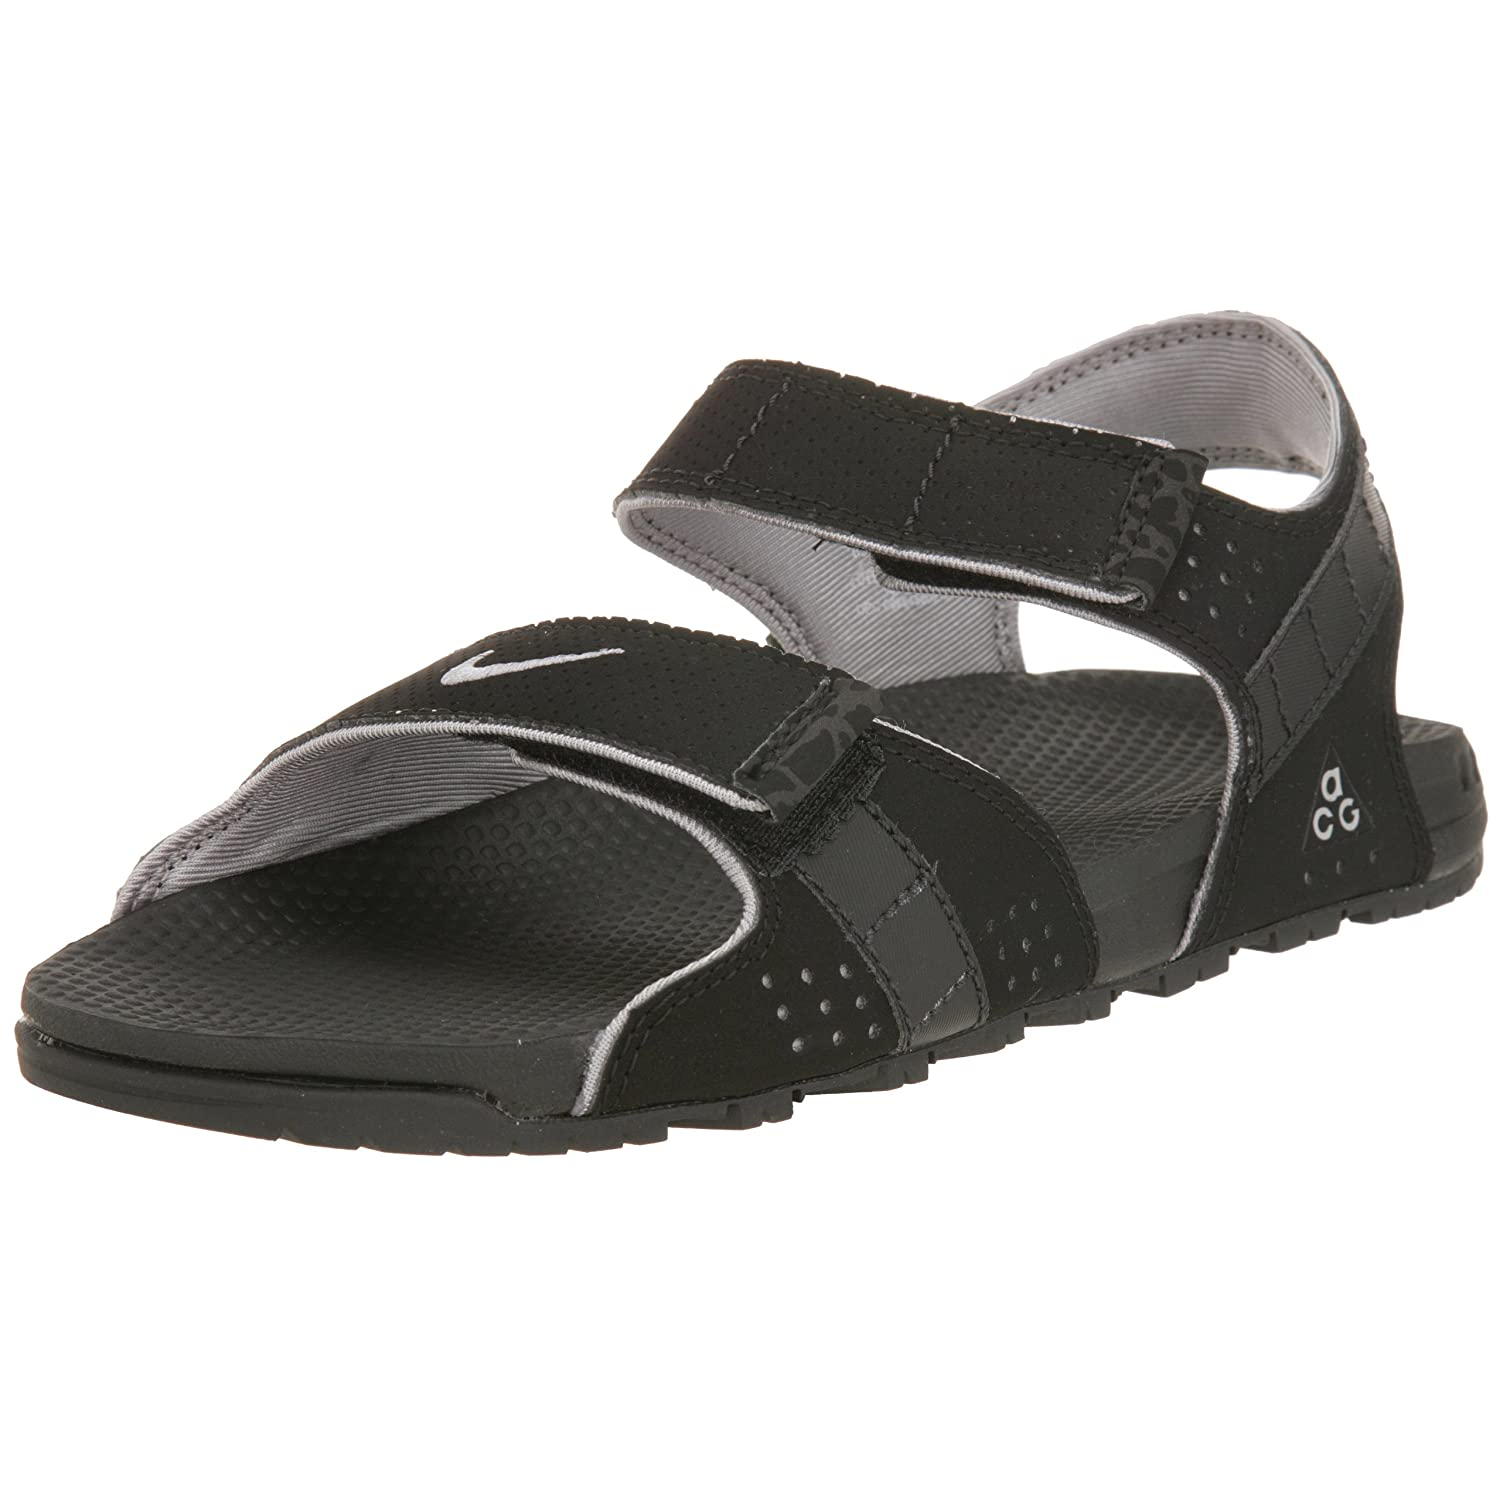 edfb96548fb7 Nike acg rayong sandal men sports outdoors jpg 1500x1500 Nike acg rayong  sandals